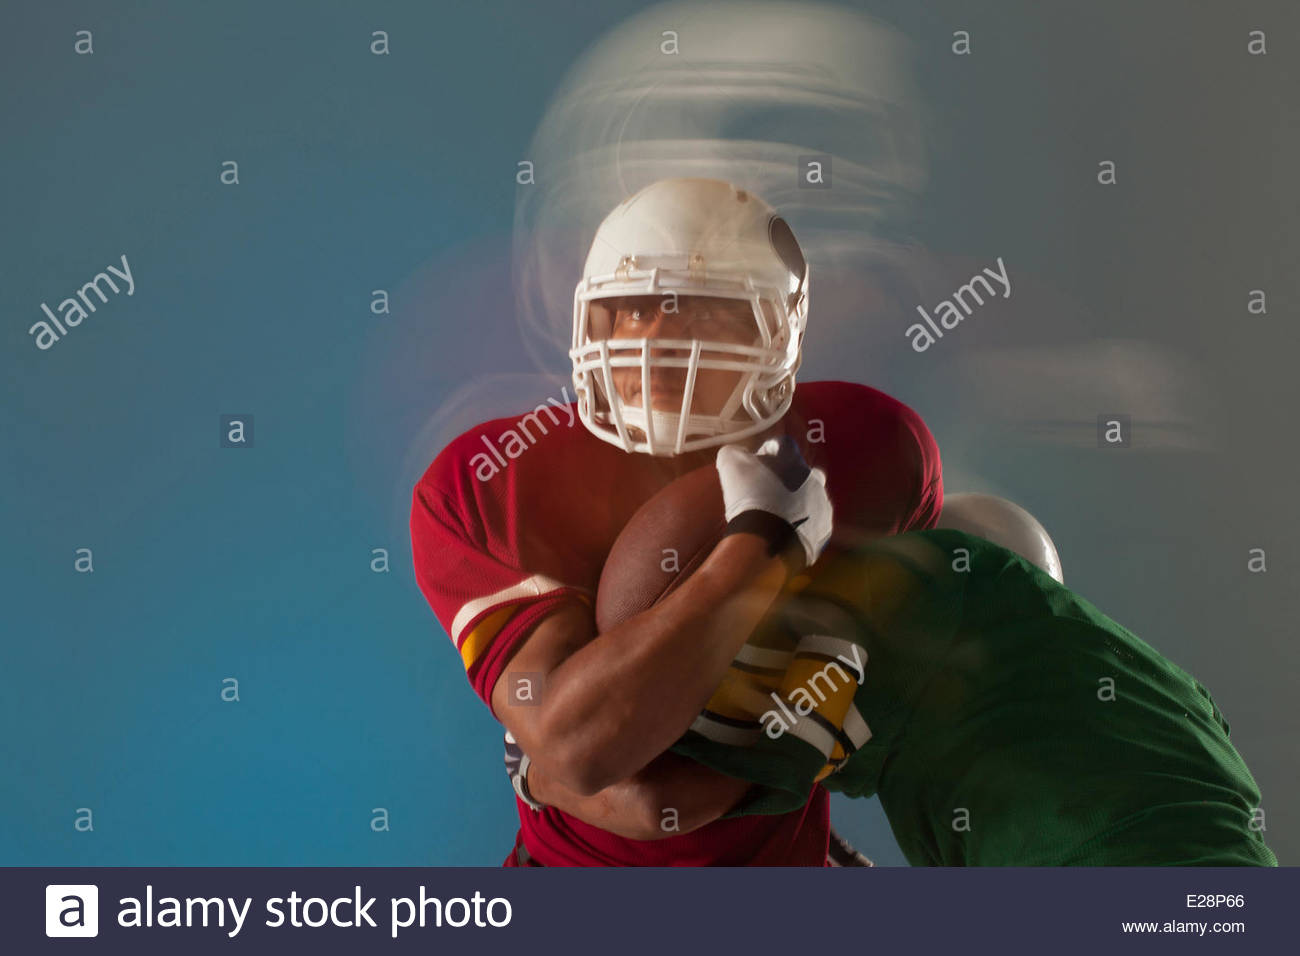 Blurred view of football players with ball Stock Photo